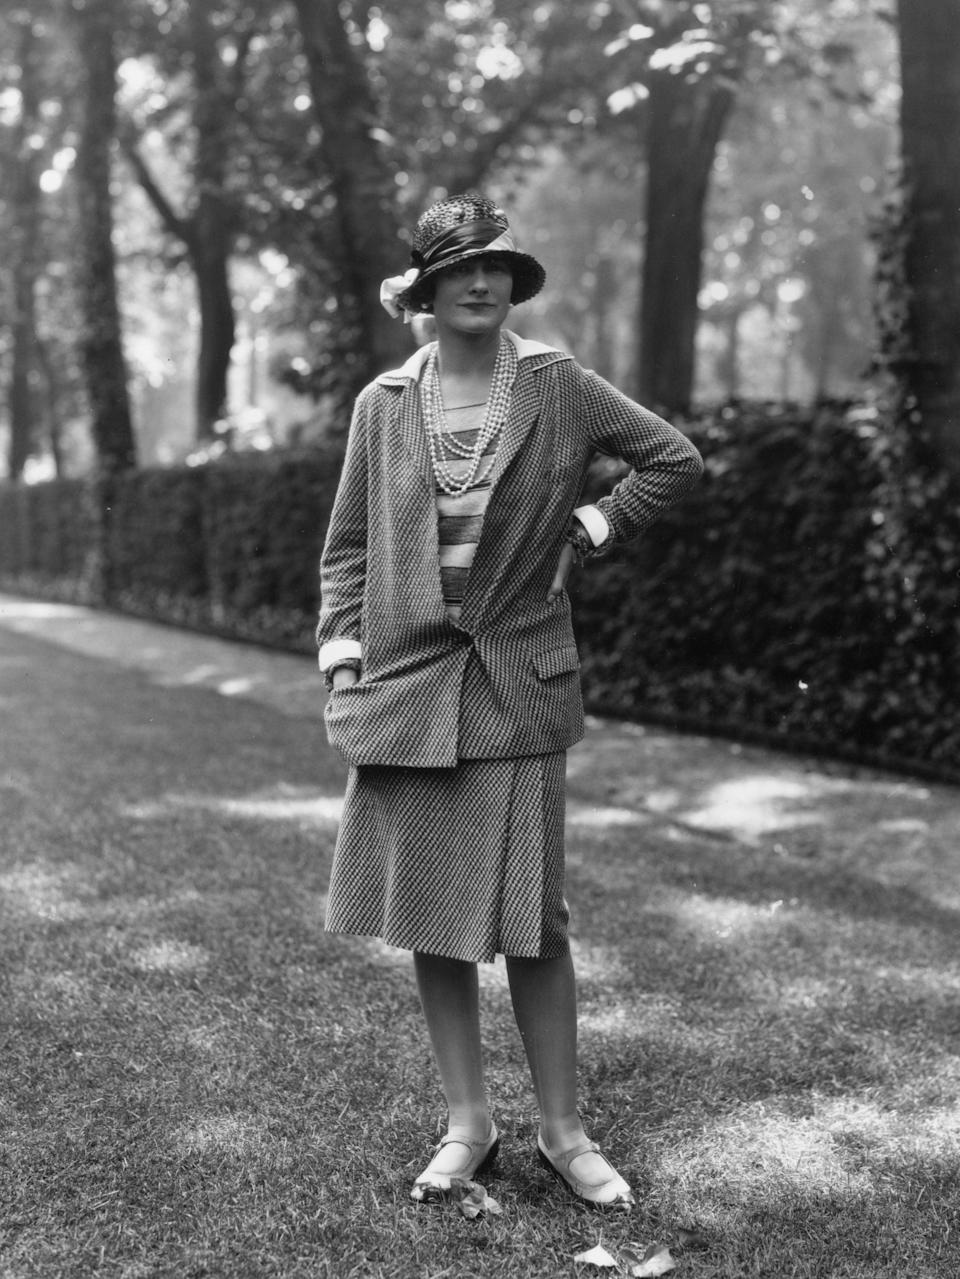 Coco Chanel modelling a Chanel suit at Fauborg, St Honore, Paris in 1929.Getty Images